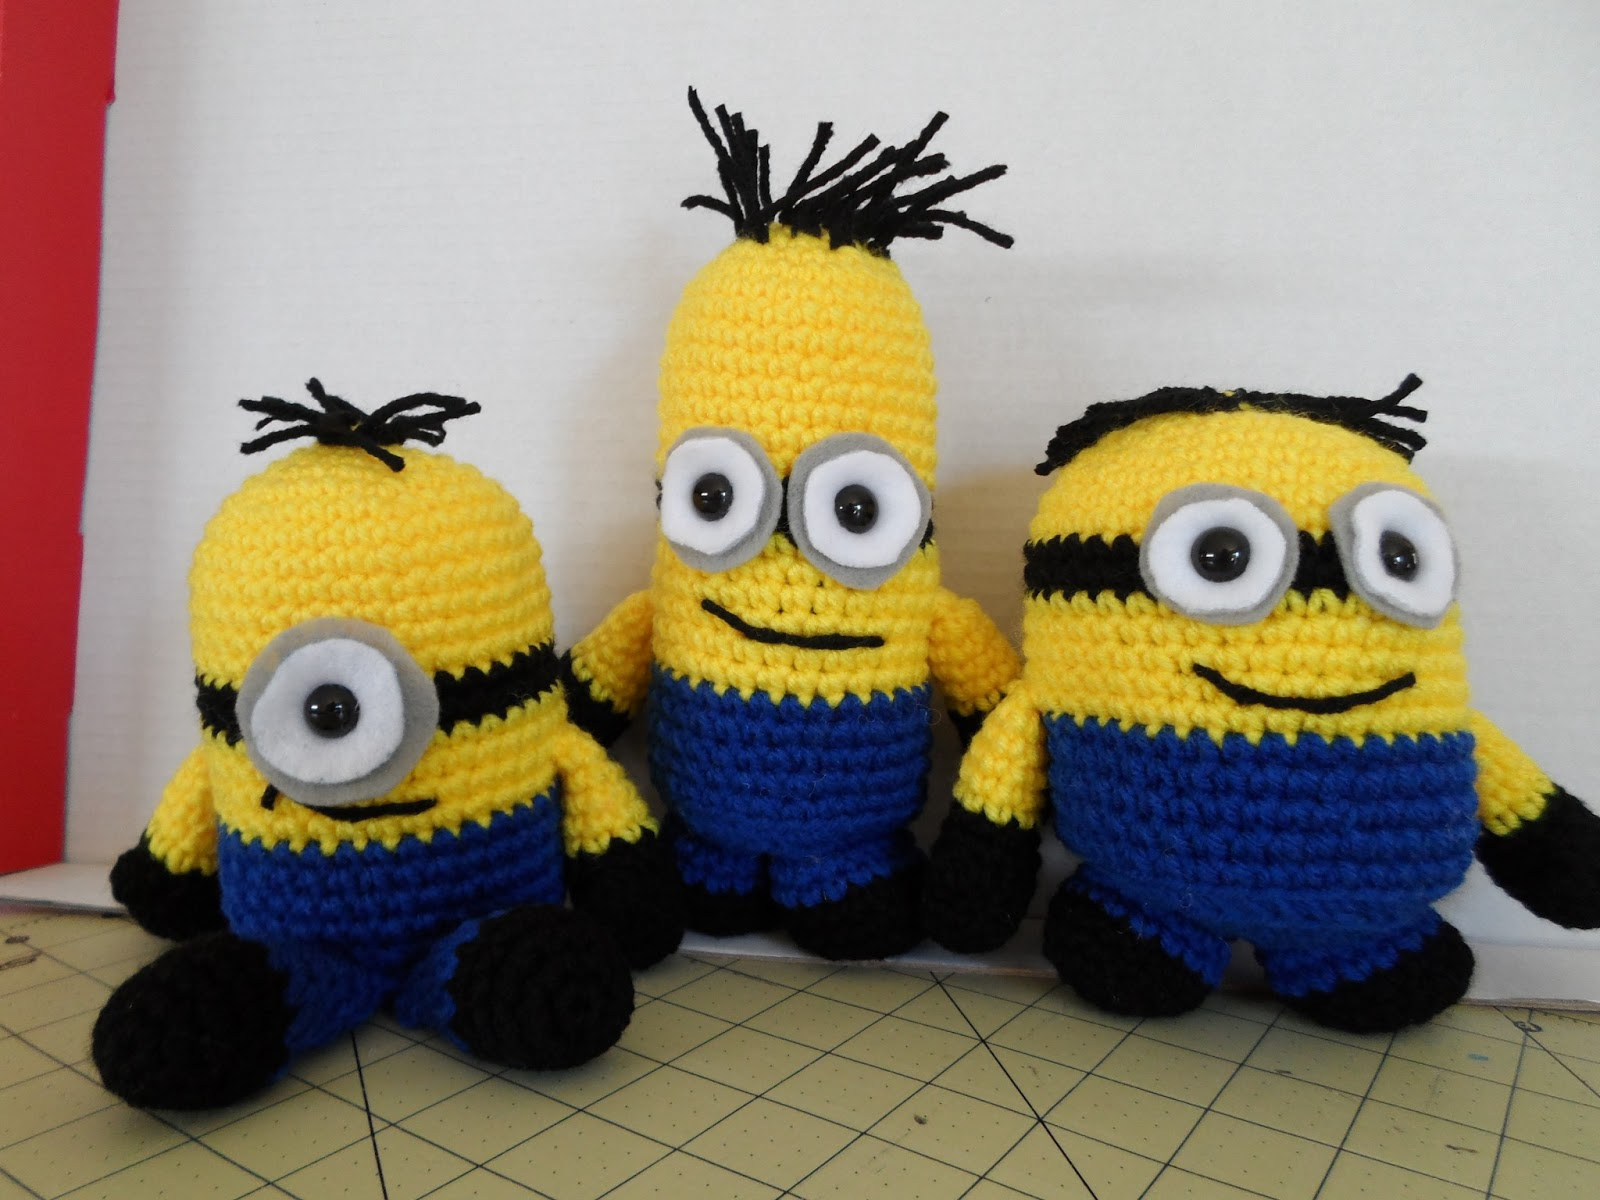 Kristen's Crochet: Minion Inspired Crochet Softie